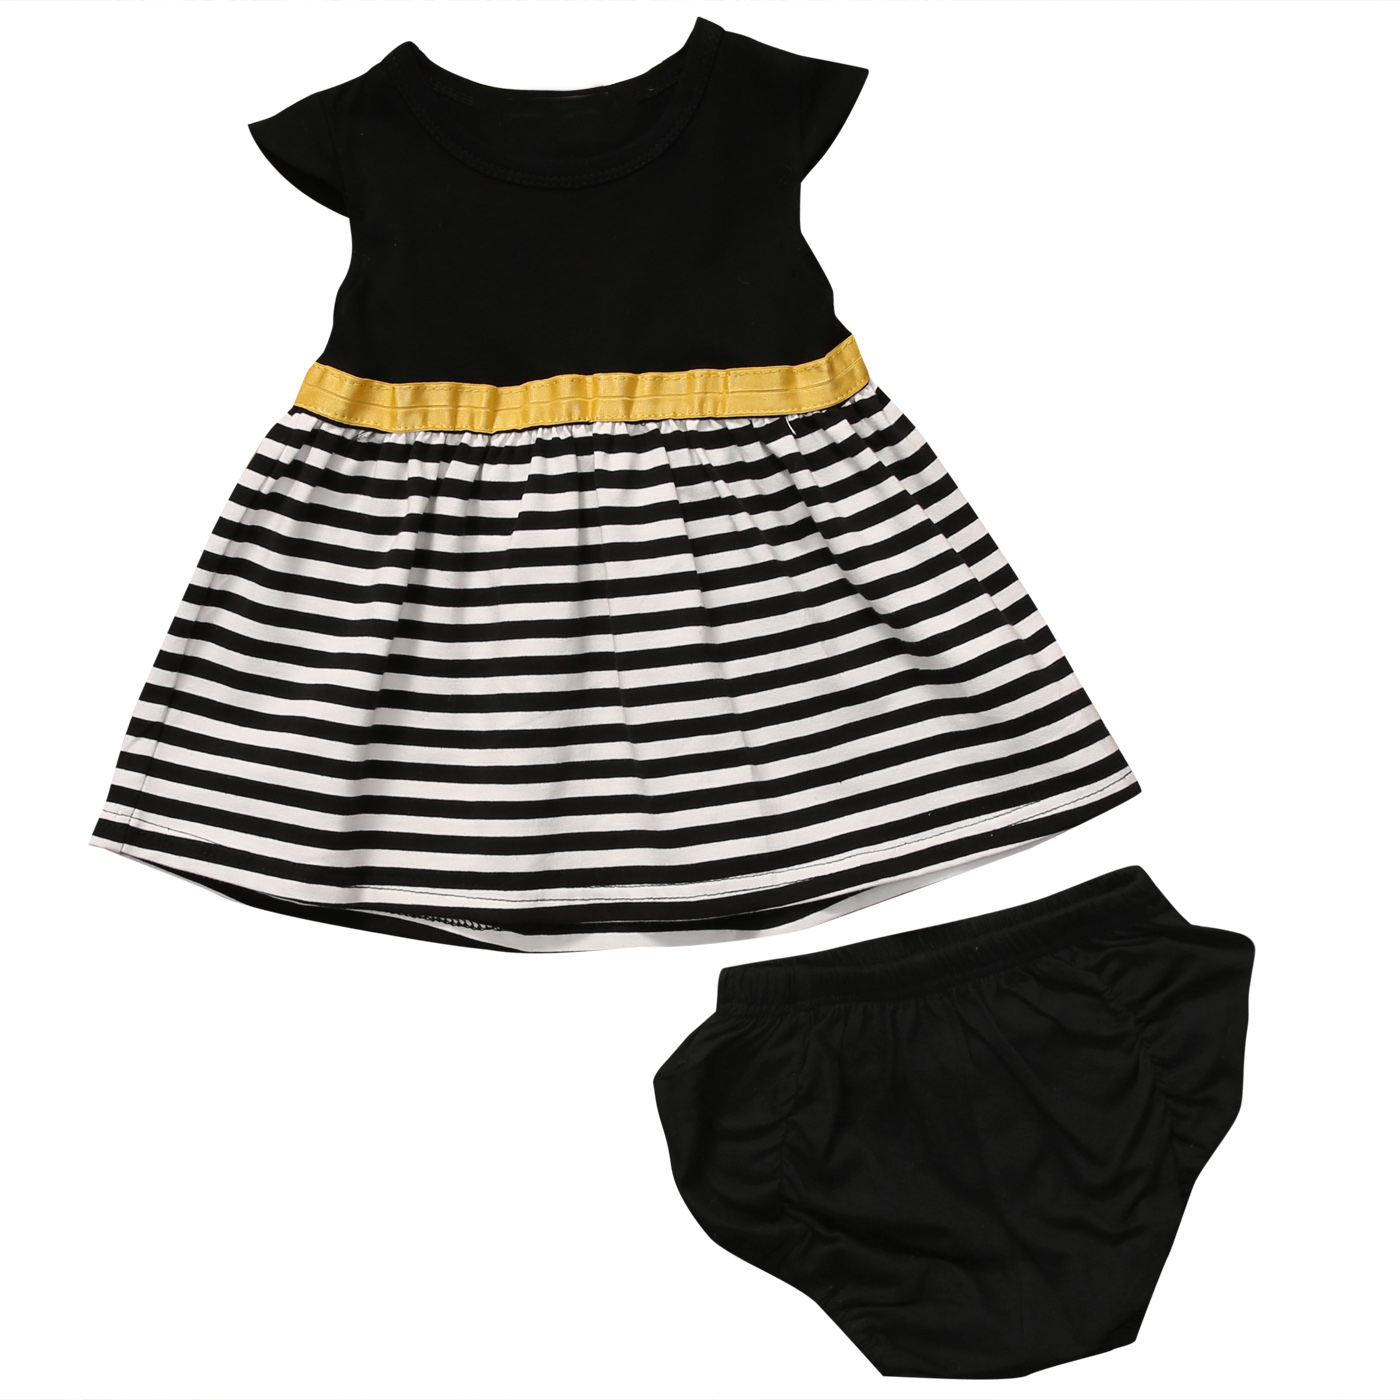 Toddler Kids Baby Girls Summer Outfits T-shirt Tops Pants Short 2PCS Clothes New Arrival Girl Costumes 1-2 Years family fashion summer tops 2015 clothers short sleeve t shirt stripe navy style shirt clothes for mother dad and children